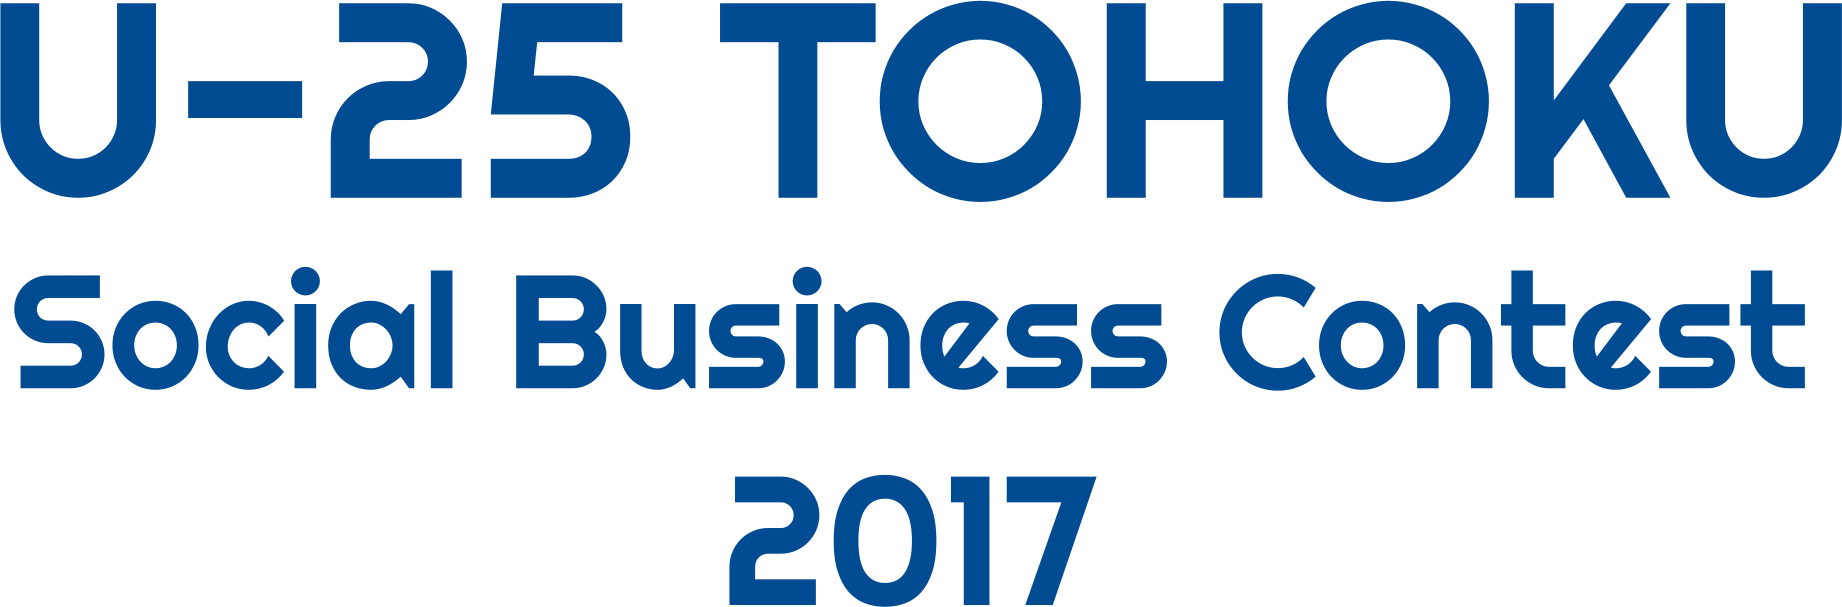 U-25 TOHOKU Special Business Contest 2017